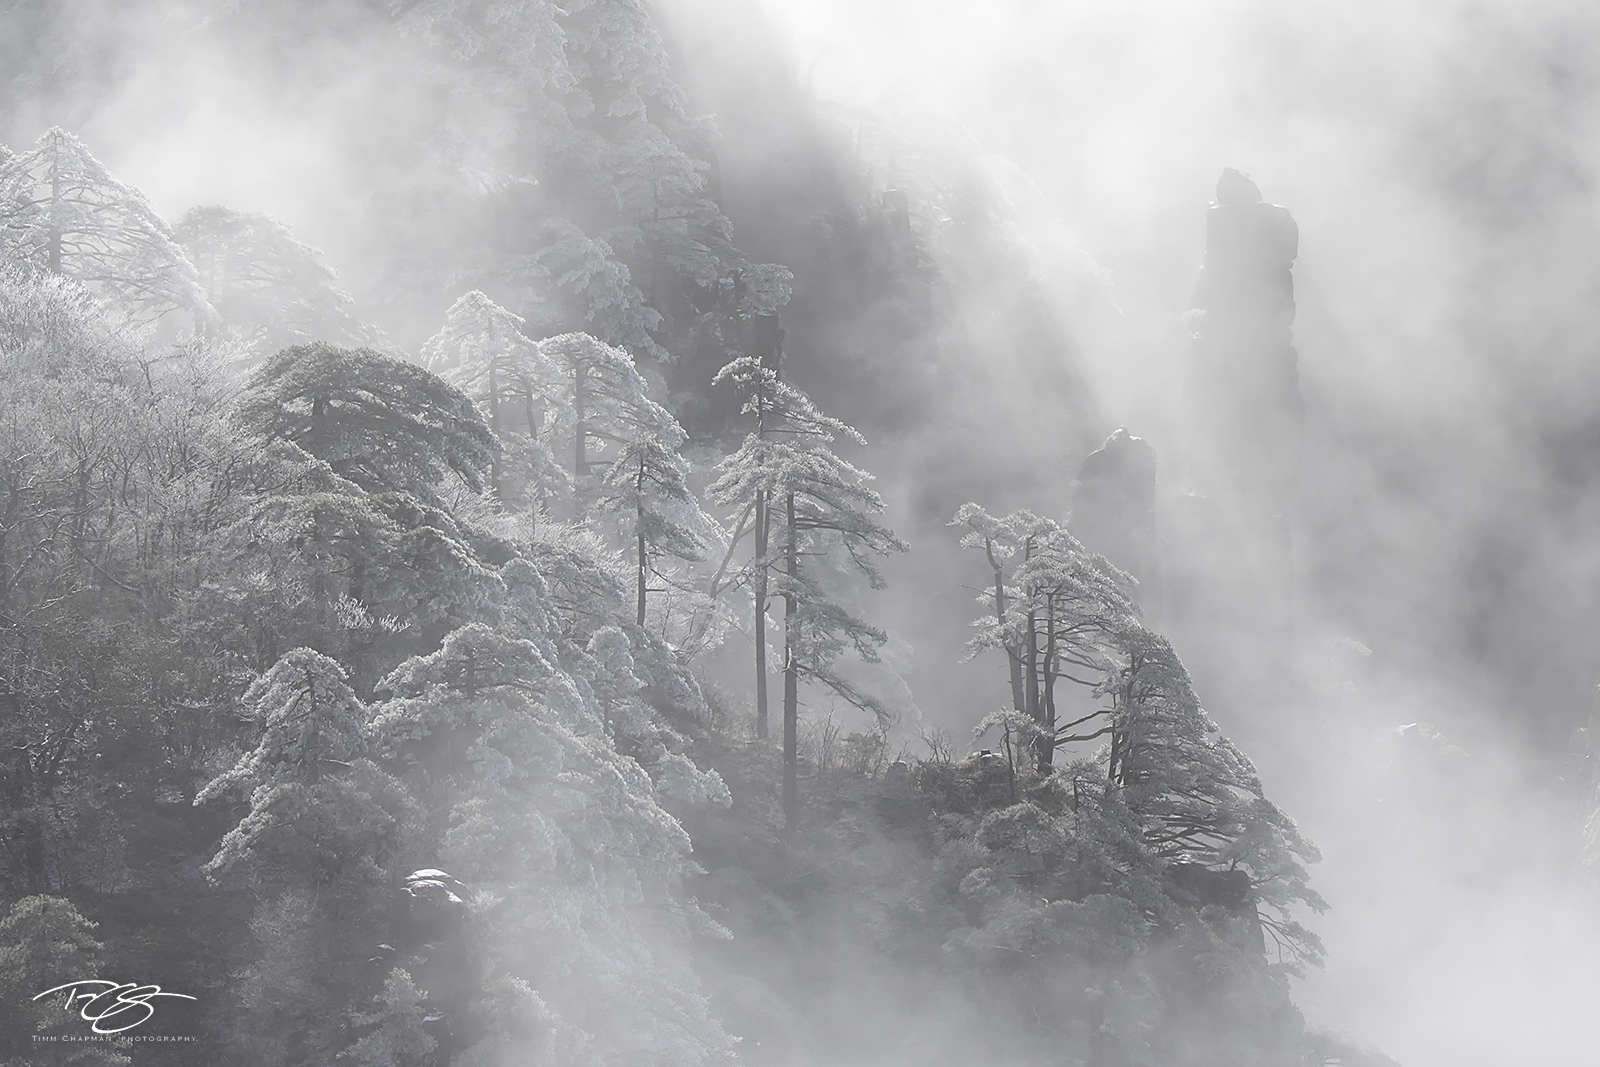 huangshan; china; yellow mountains; floating mountains; clouds; inversion; fog; spires; towers; xihai, frost, frosty, frosted, black and white, monochrome, huangshan pine, photo